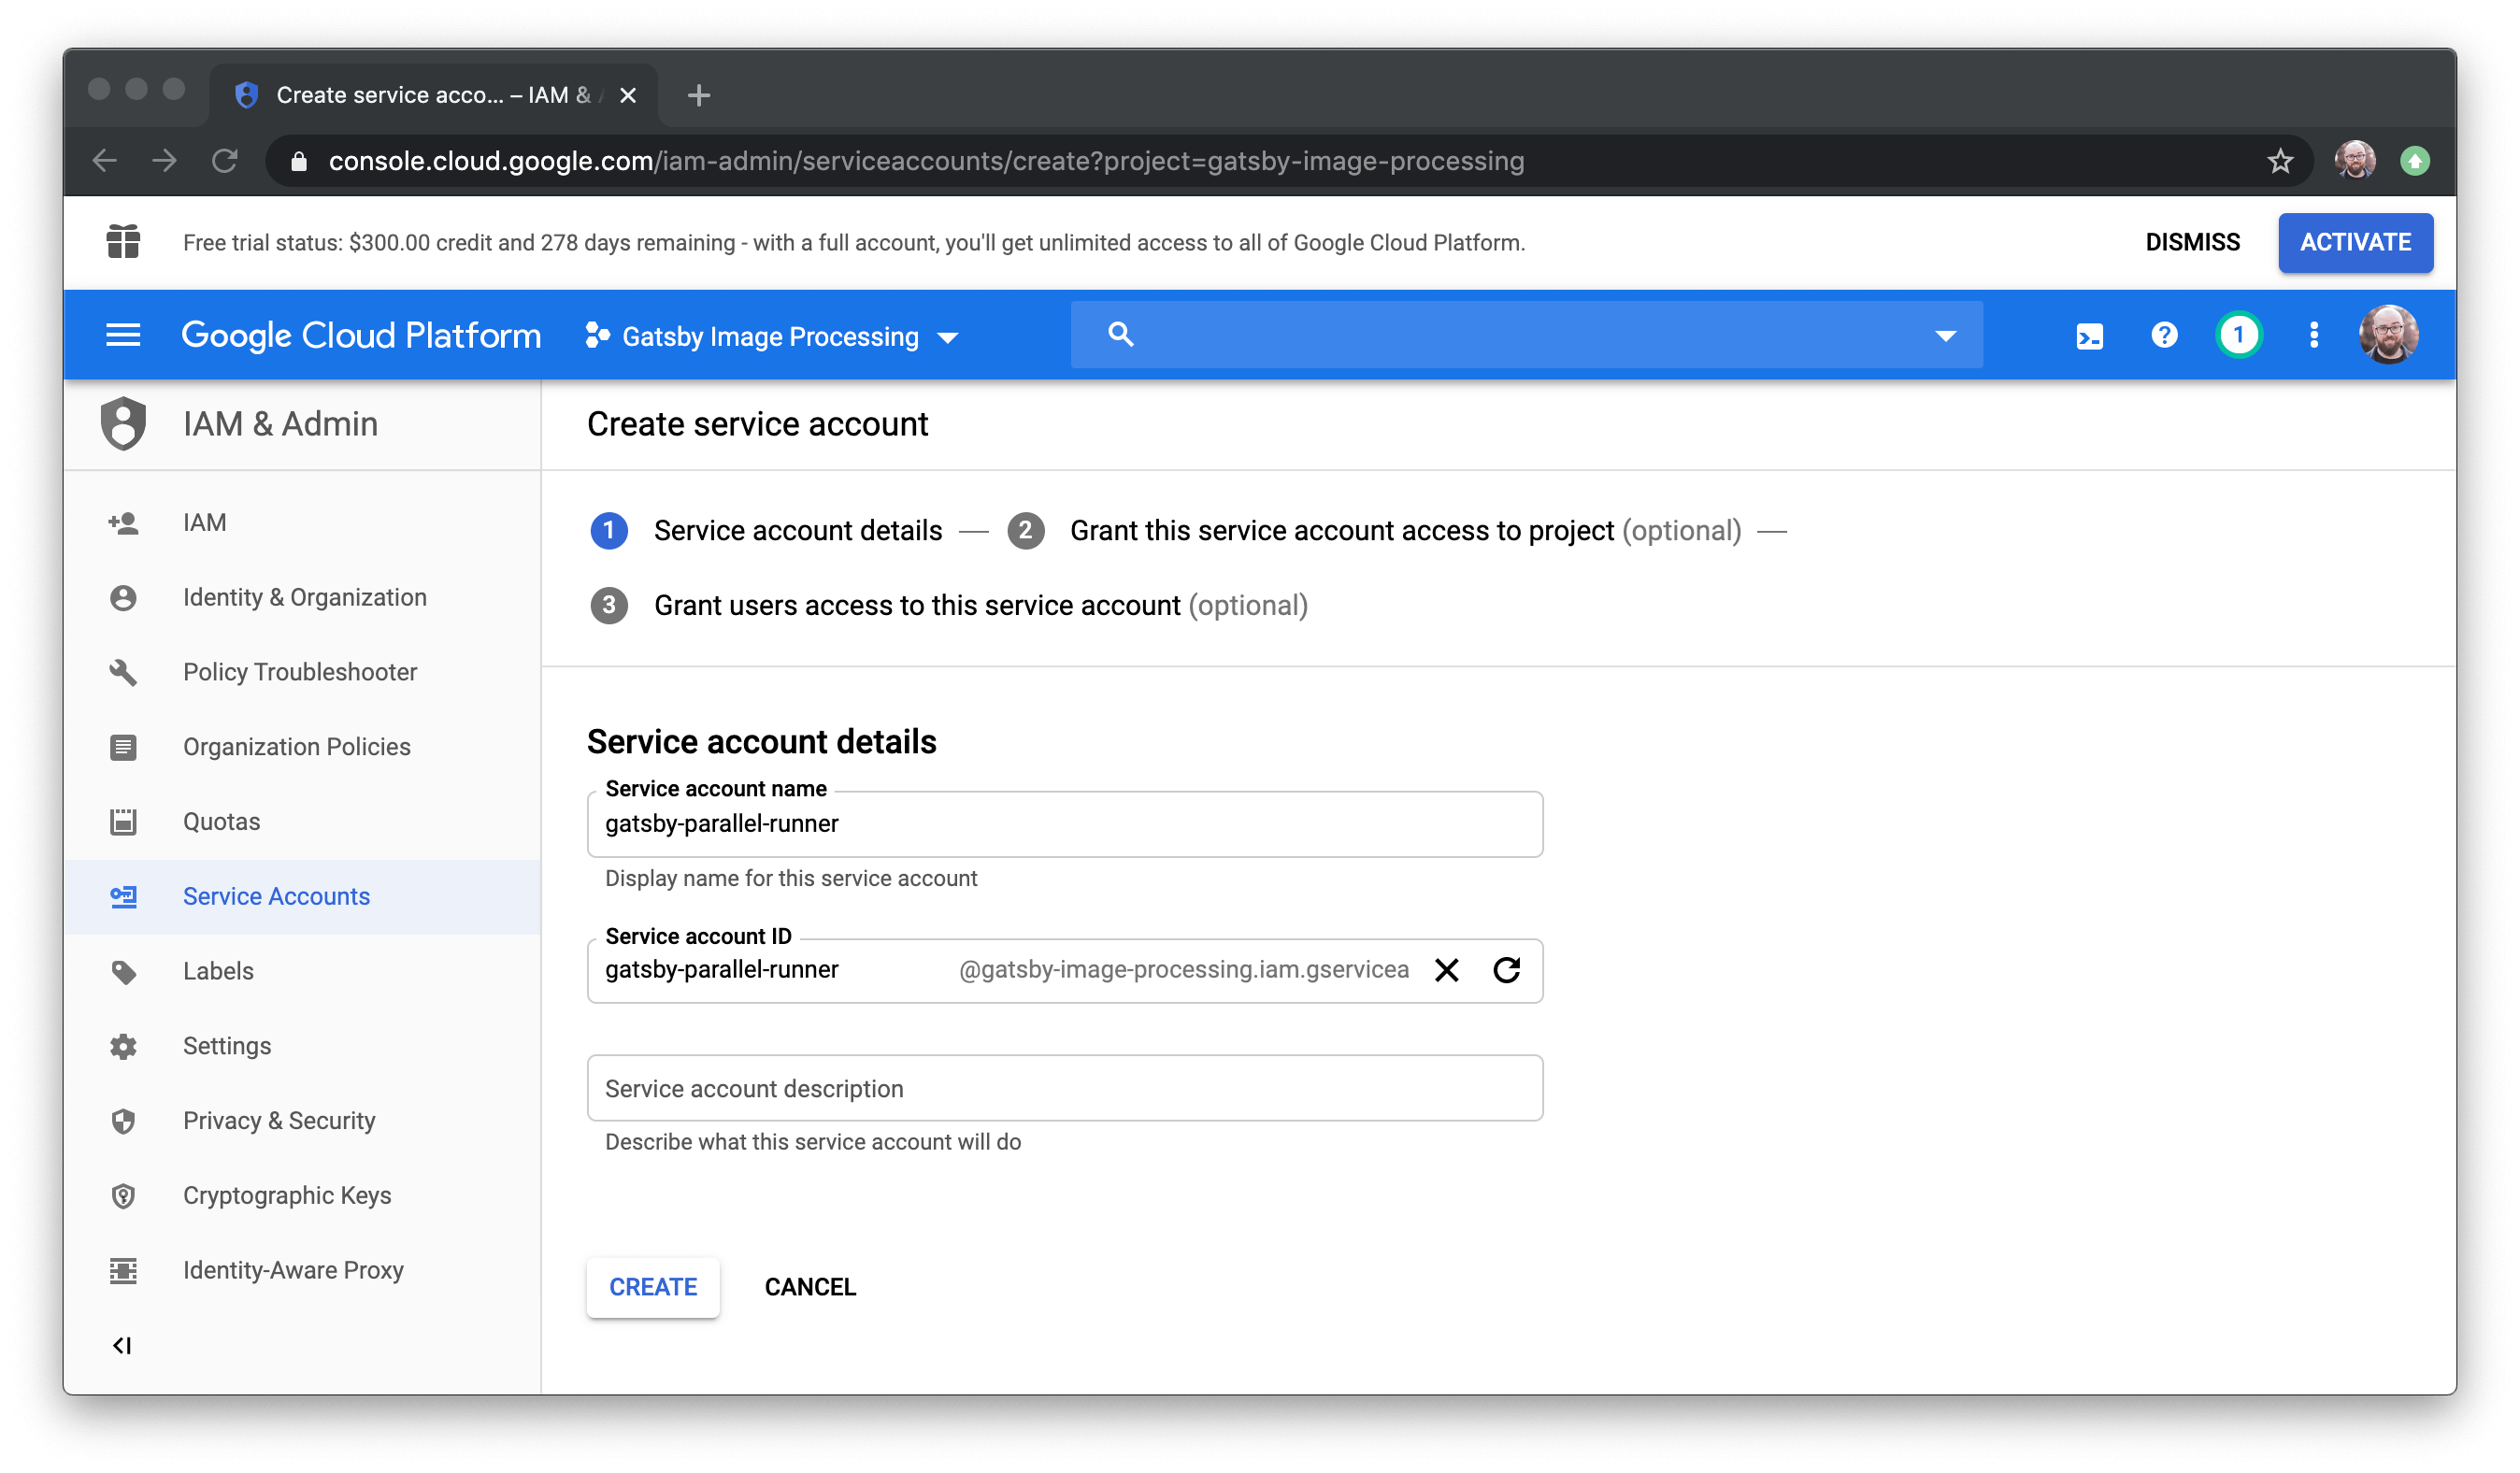 The create service account page in Google Cloud.